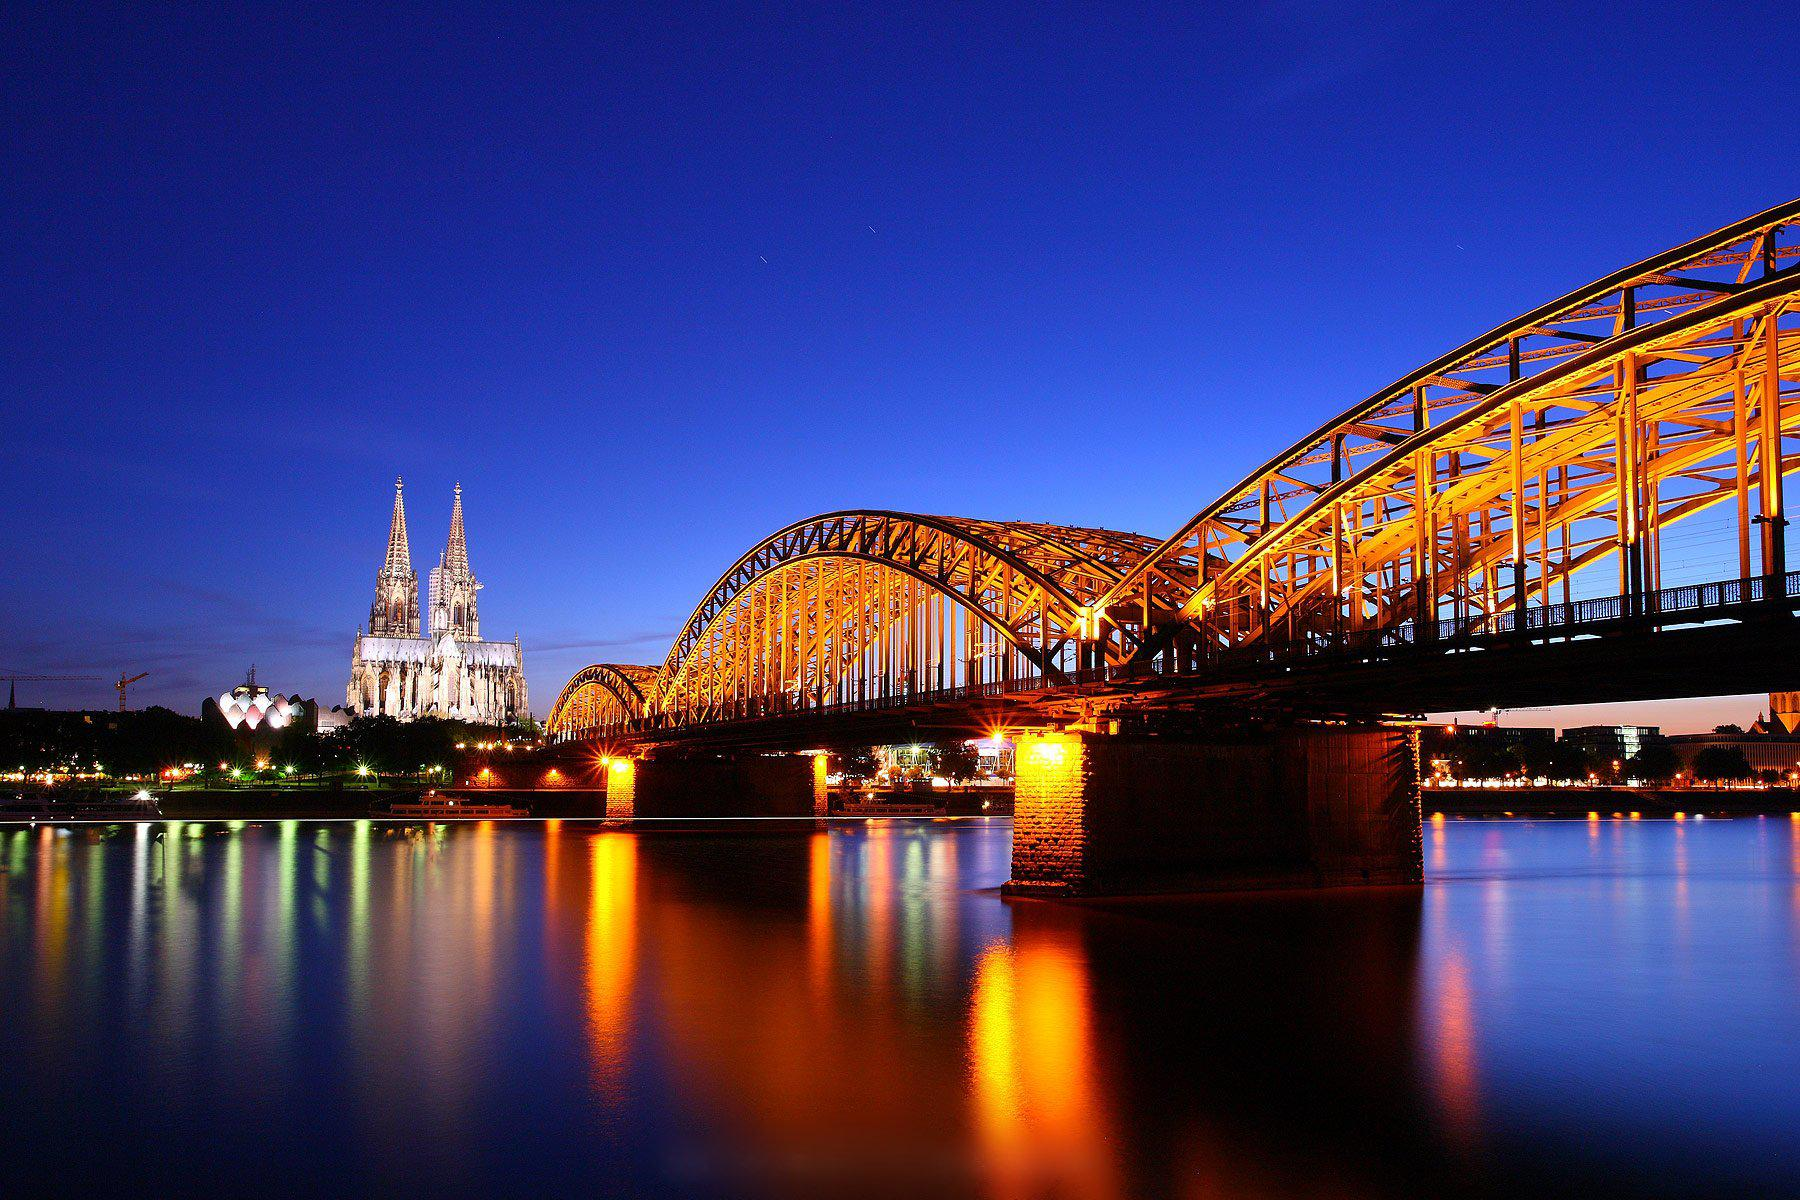 Cute Baby Wallpaper Hd 1080p Hd Cologne Cathedral Twilight Germany Bridge Reflection